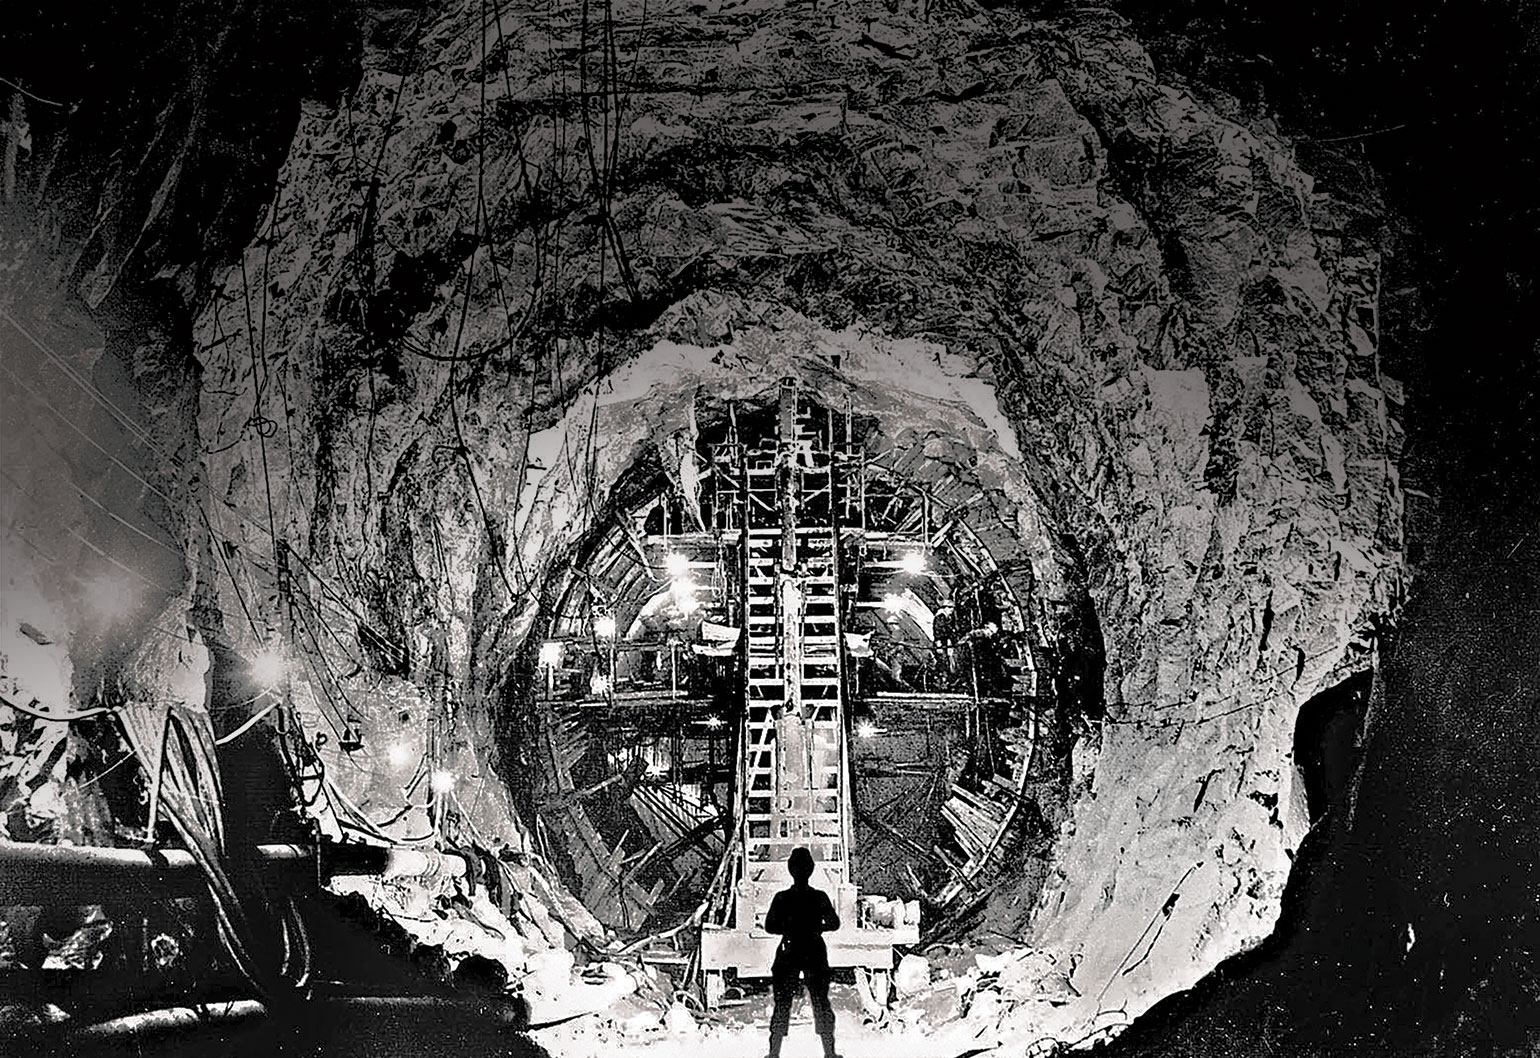 Tunnelling through the Snowy Mountains. (Image: National Archives of Australia/Fairfax Media)